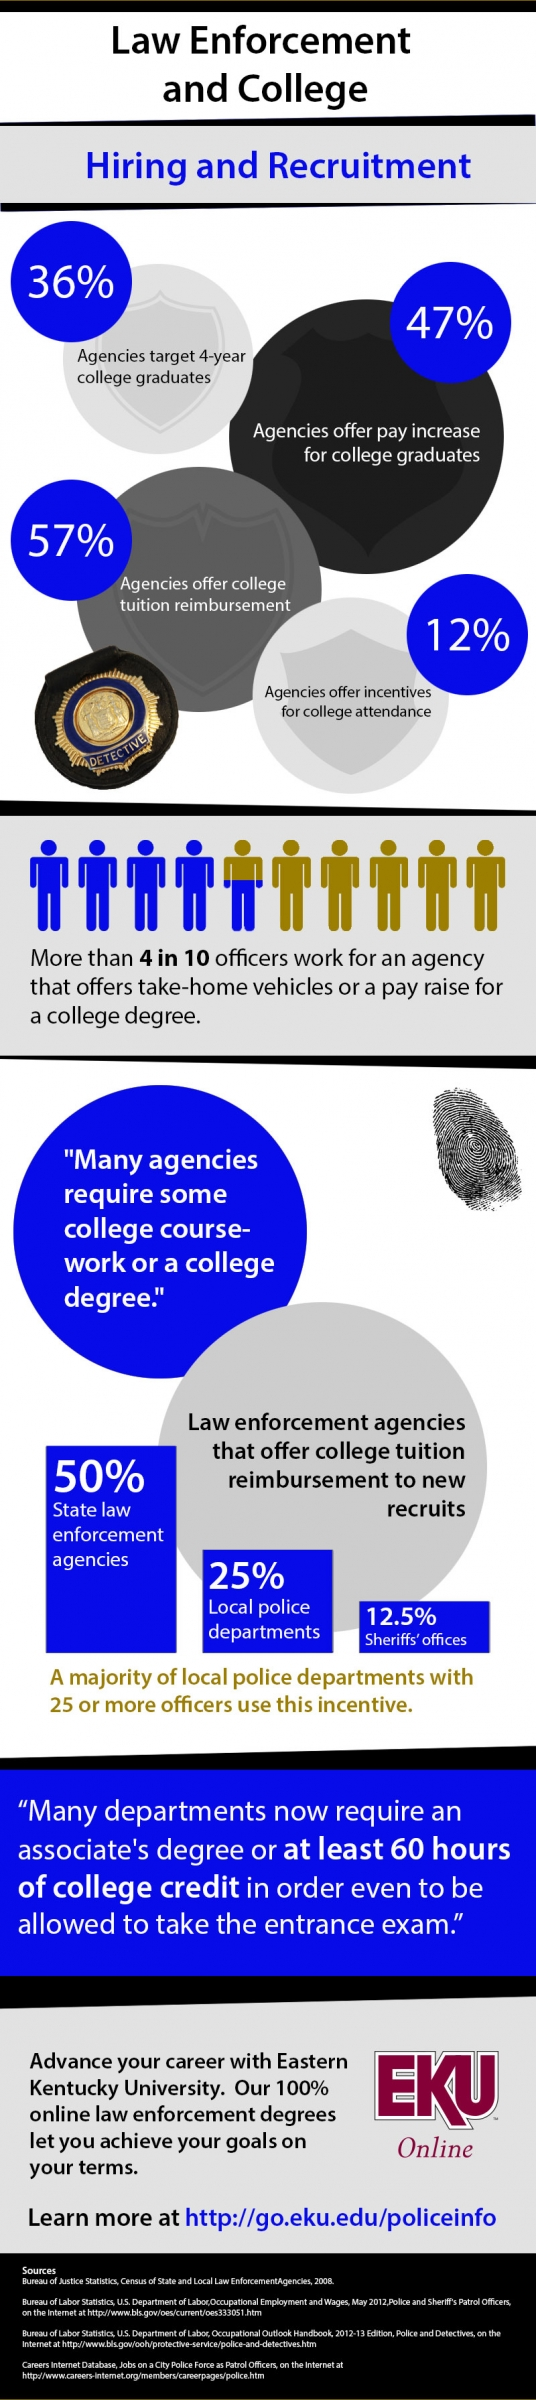 Law Enforcement and College Hiring and Recruitment